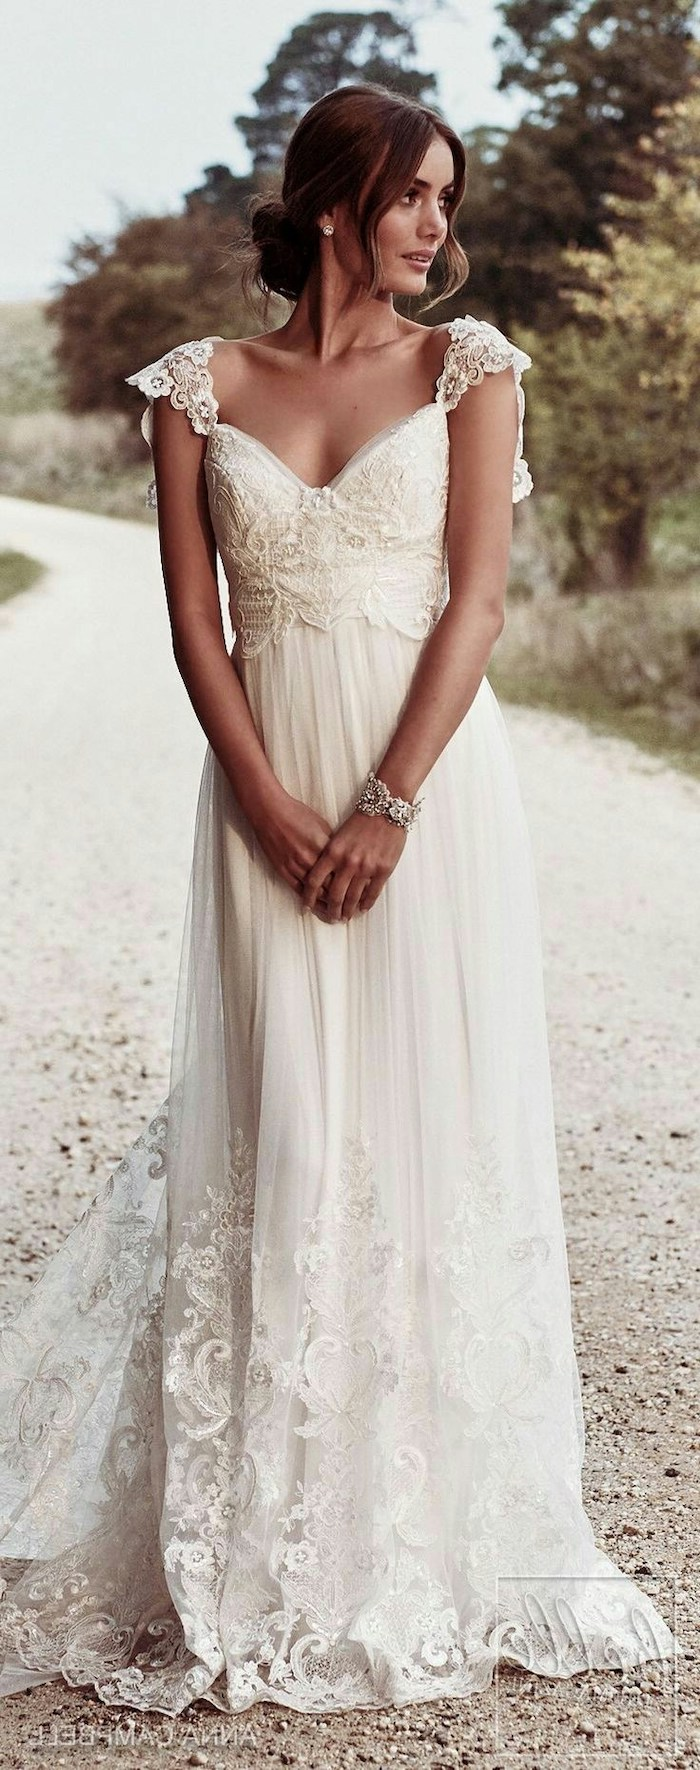 flowy wedding dress, vintage dress, made of lace and chiffon, brown hair, in a low updo